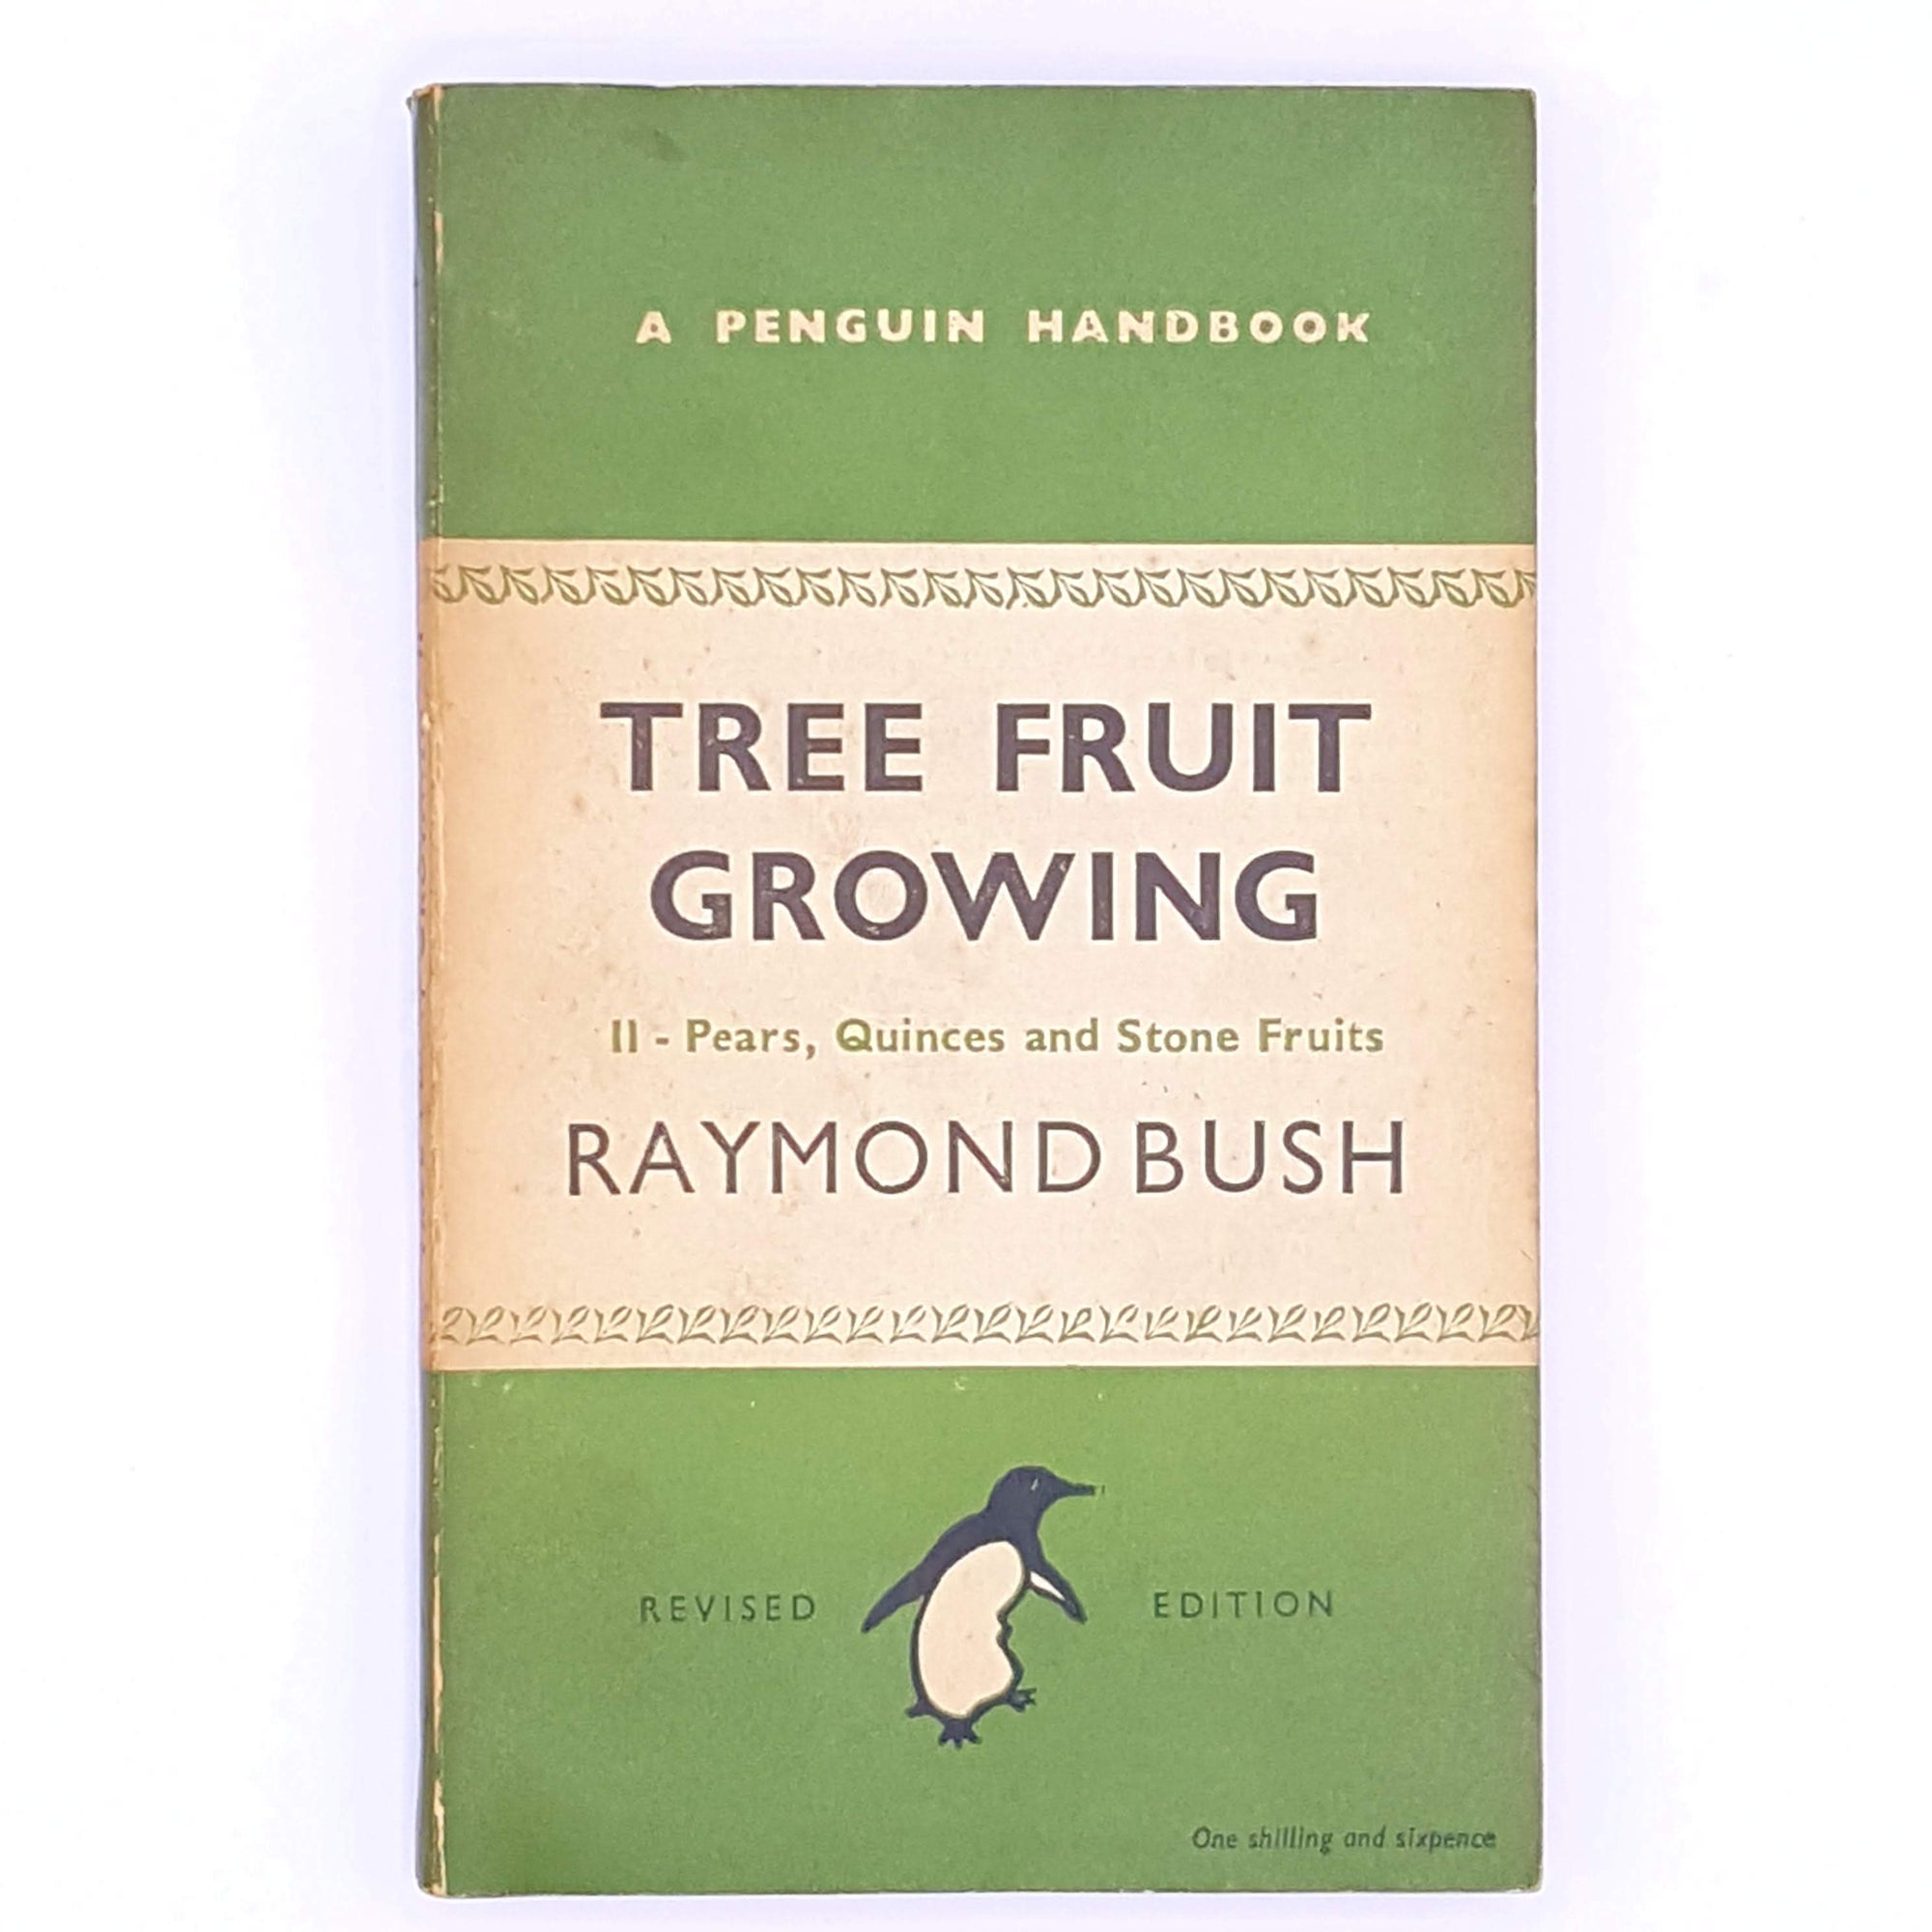 Penguin, Tree Fruit Growing, Raymond Bush, 1949